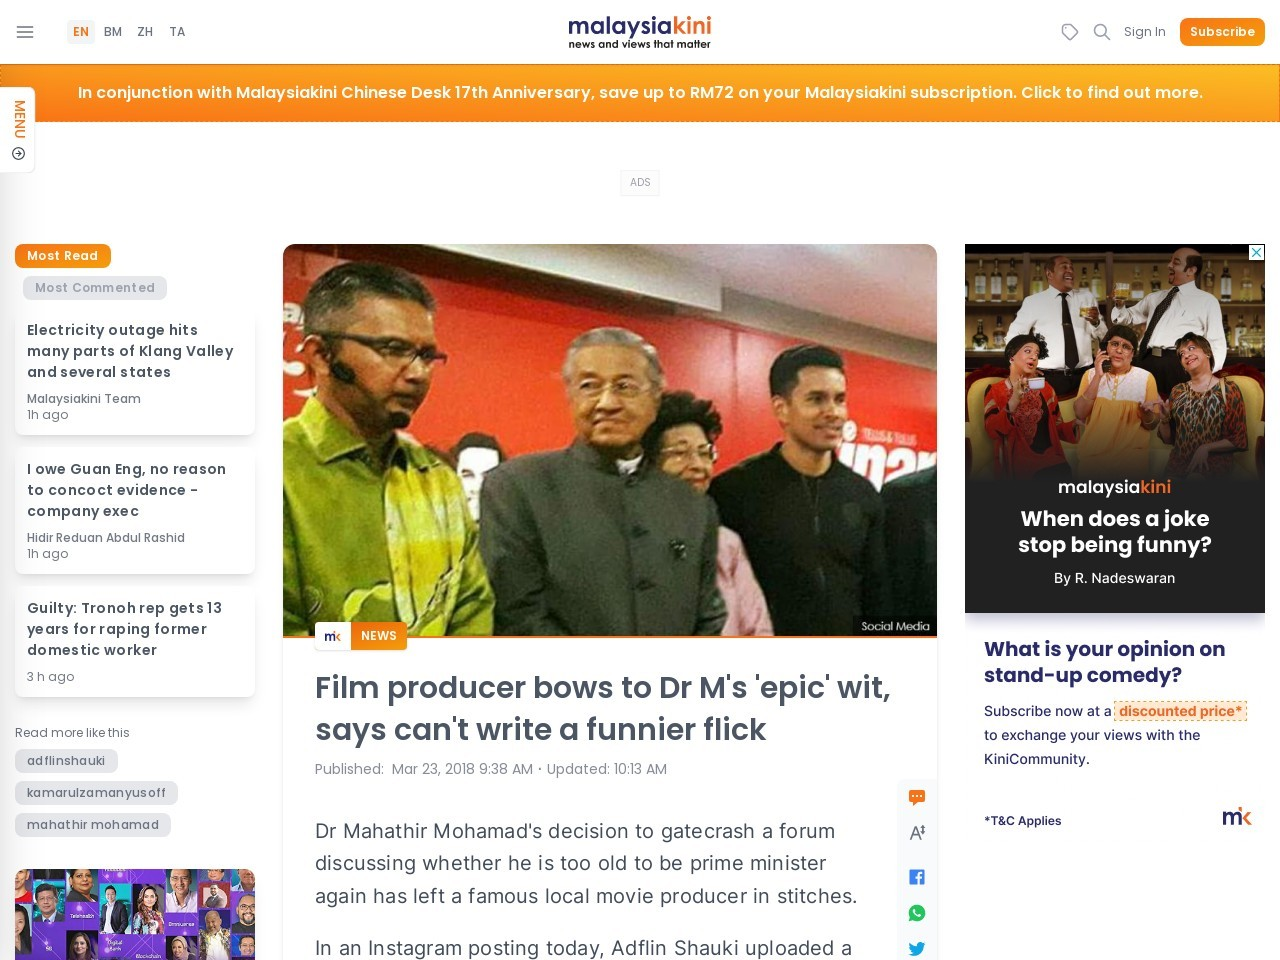 Film producer bows to Dr M's 'epic' wit, says can't make a funnier…